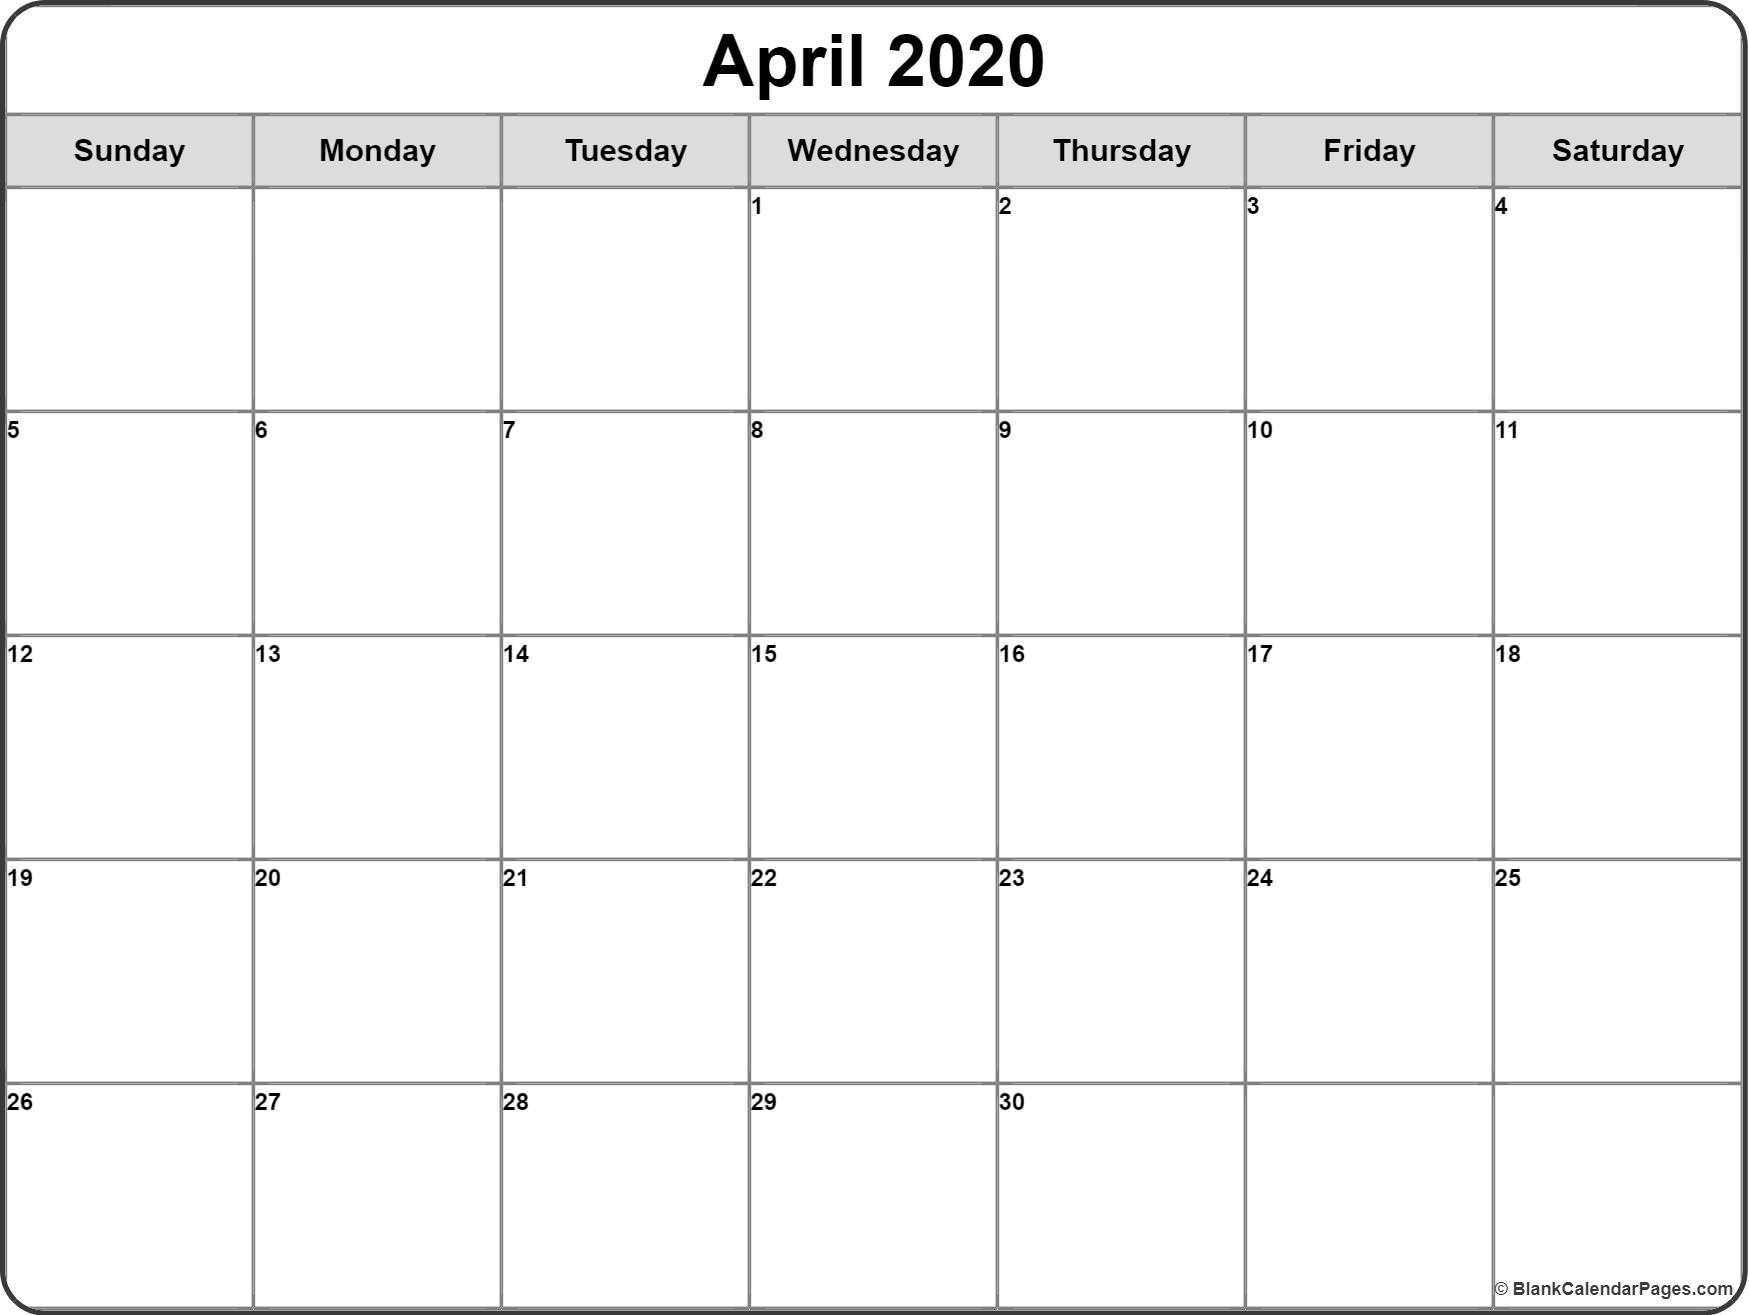 April 2020 Calendar | Free Printable Monthly Calendars-Fill In Calendar Template 2020